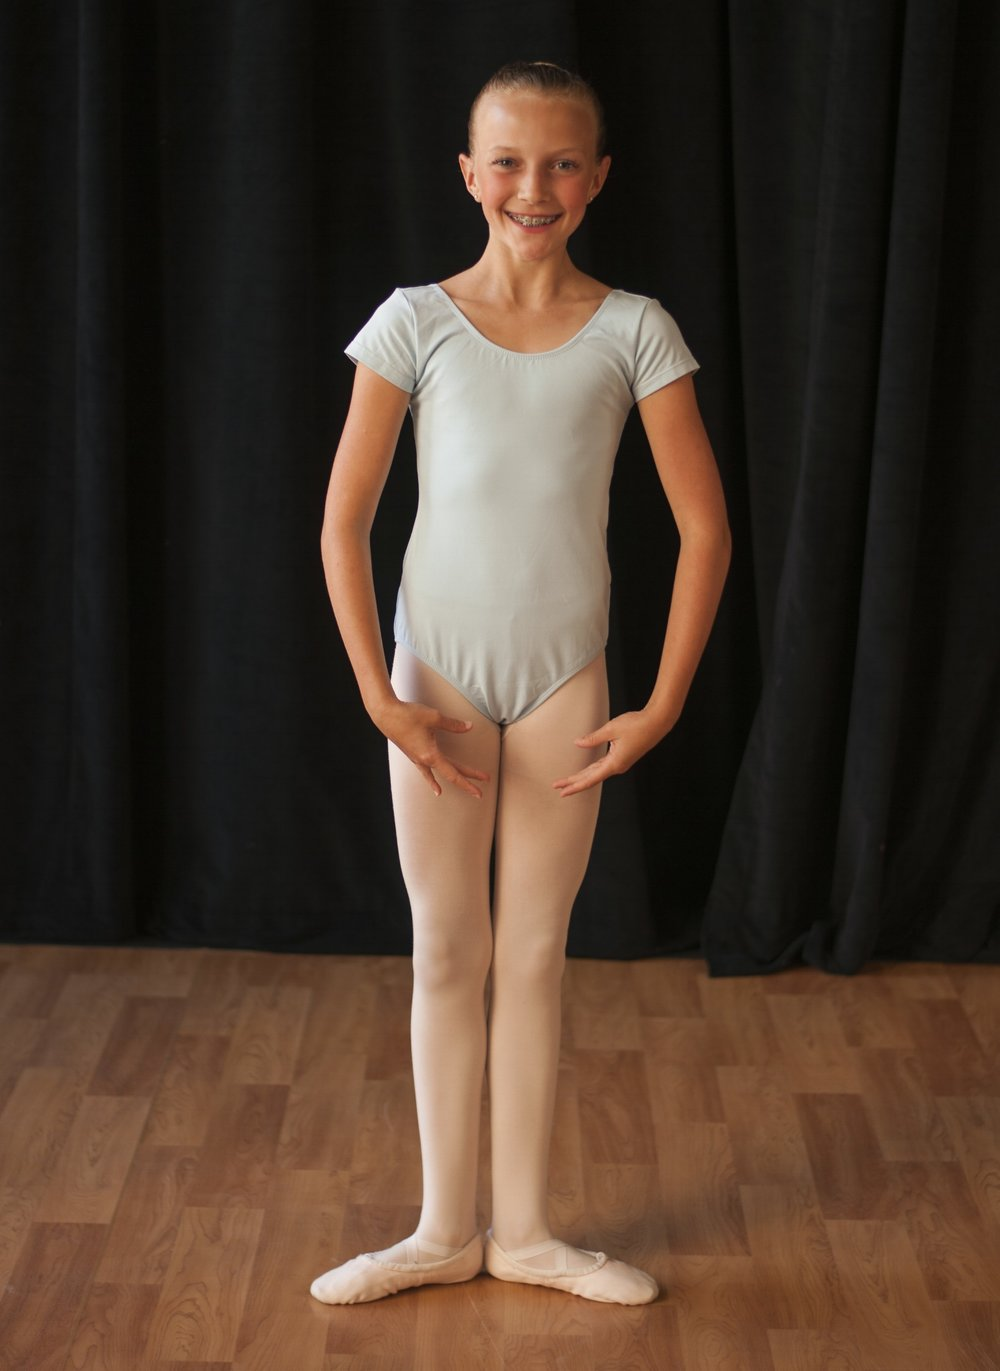 leap 'n learn 7 - Blue short sleeve leotardPink footed or convertible dance tights (no specific brand required)Pink leather or canvas ballet shoesHair in a ballet bunSkirt, sweater and leg warmers are optional and at the discretion of the teacher